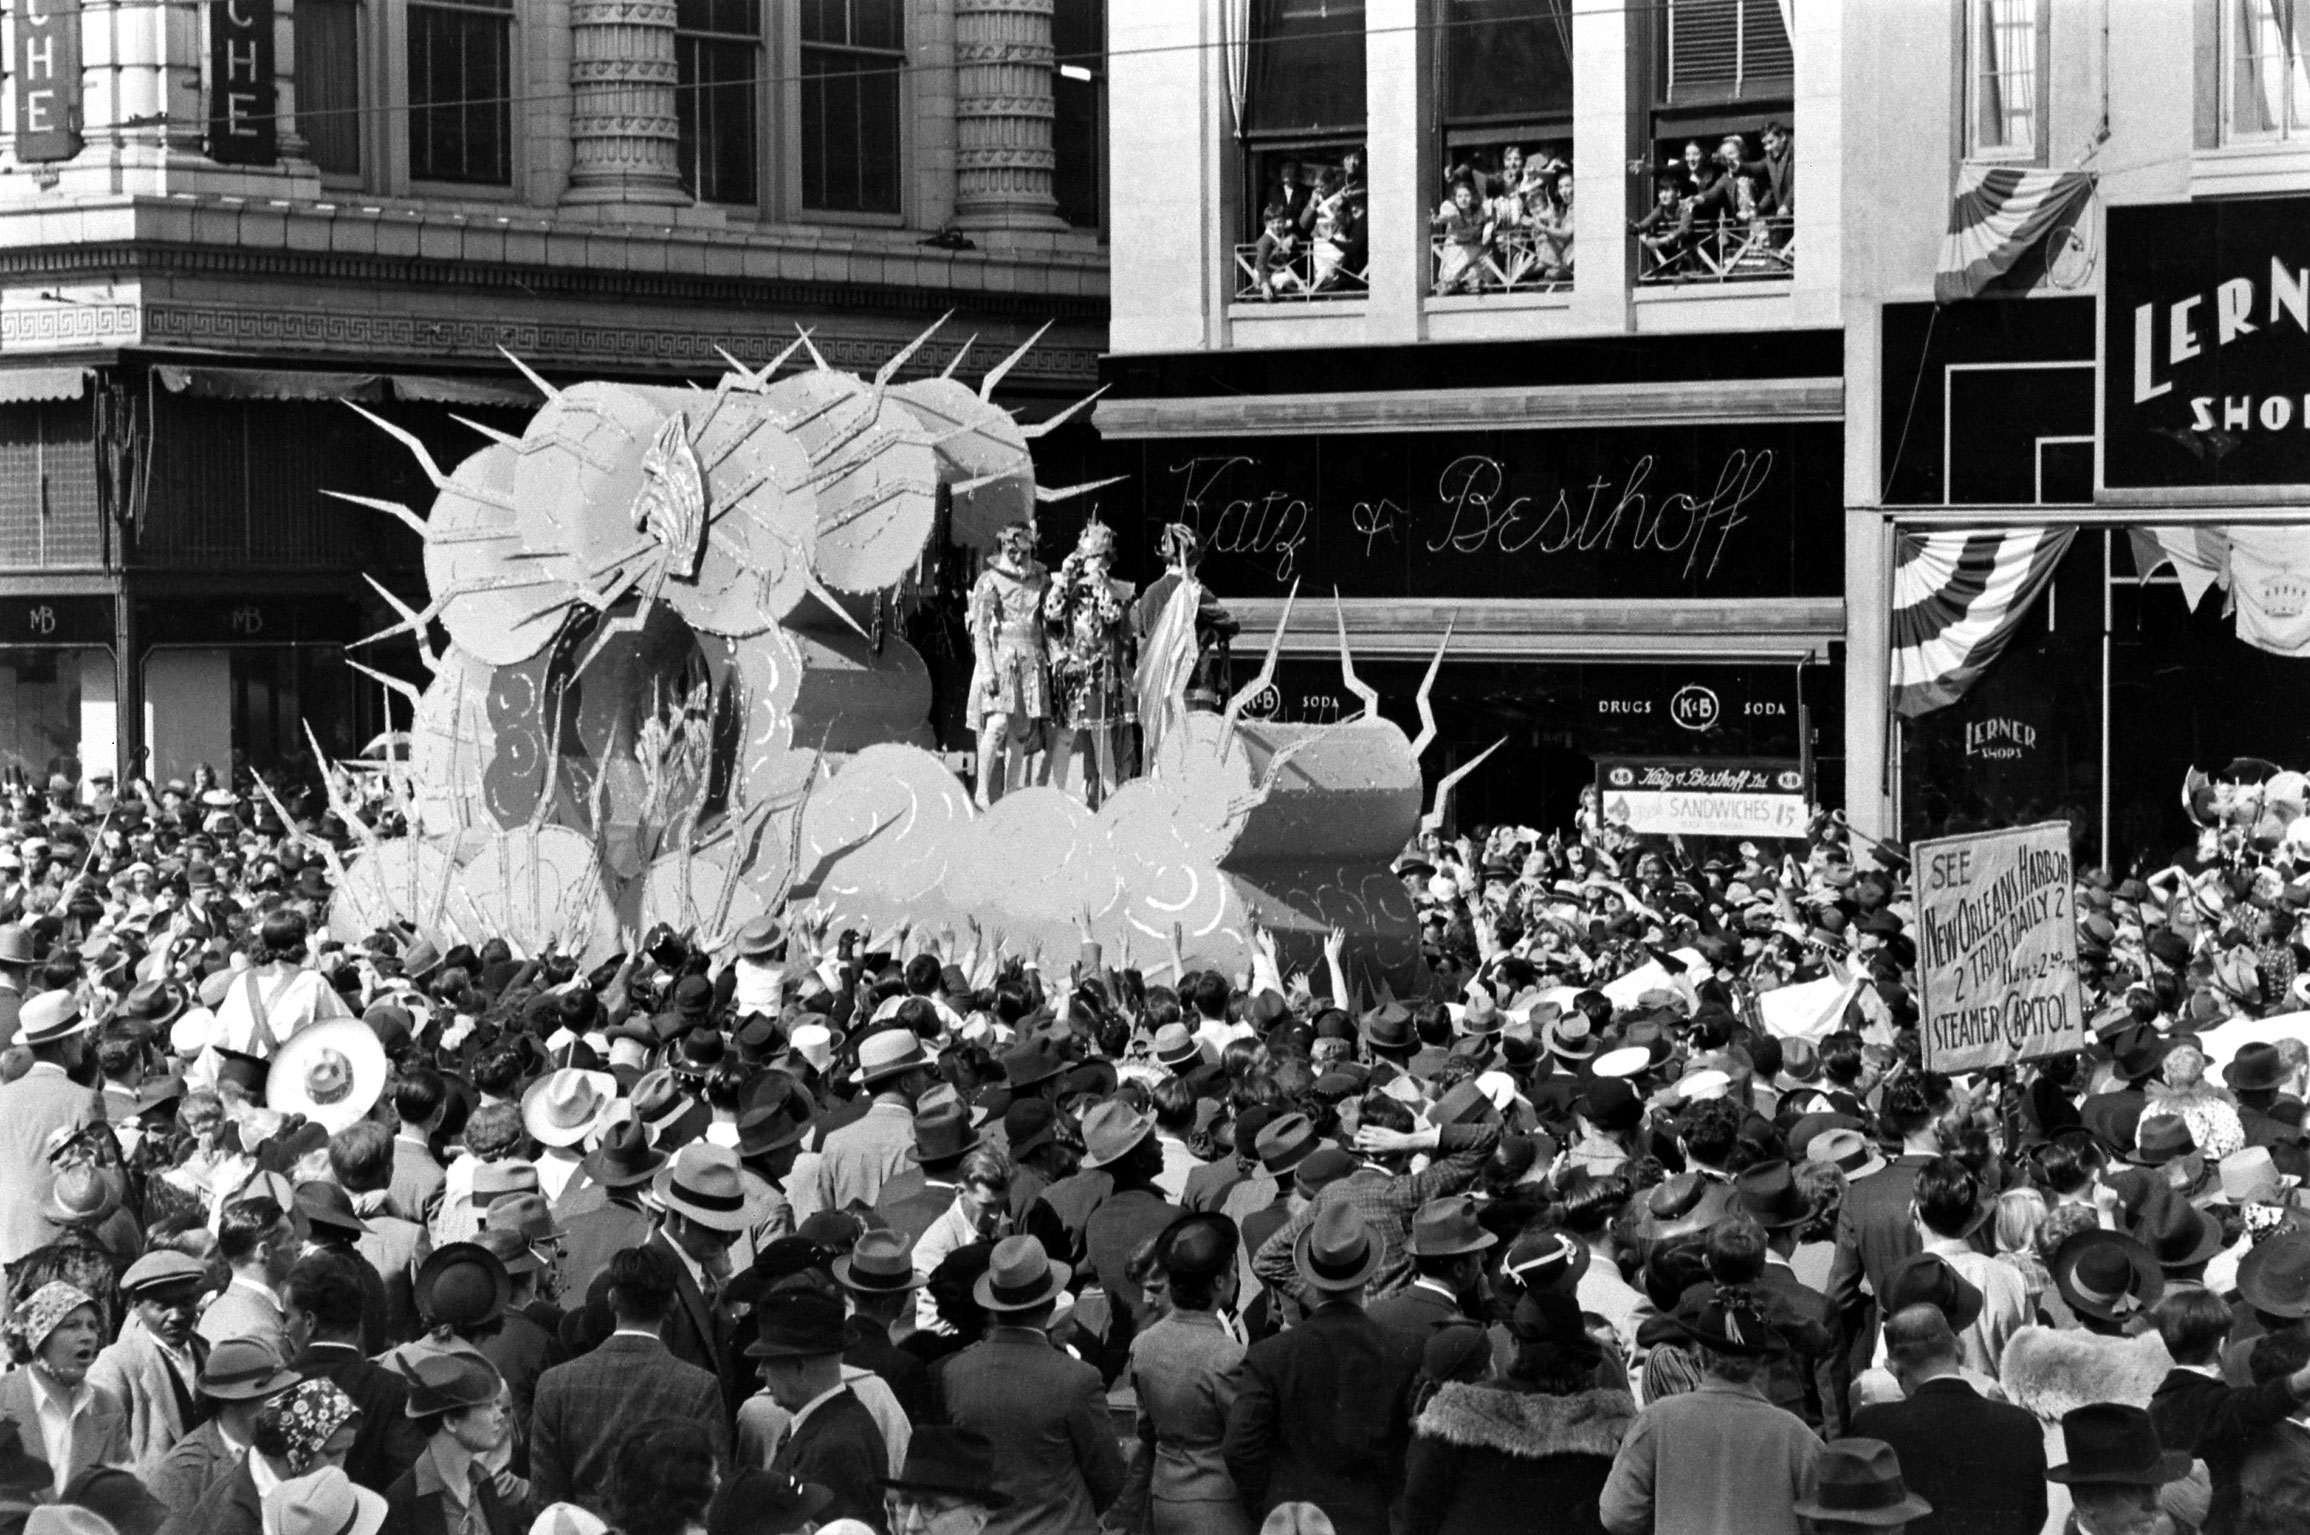 Mardi Gras float, New Orleans, 1938.